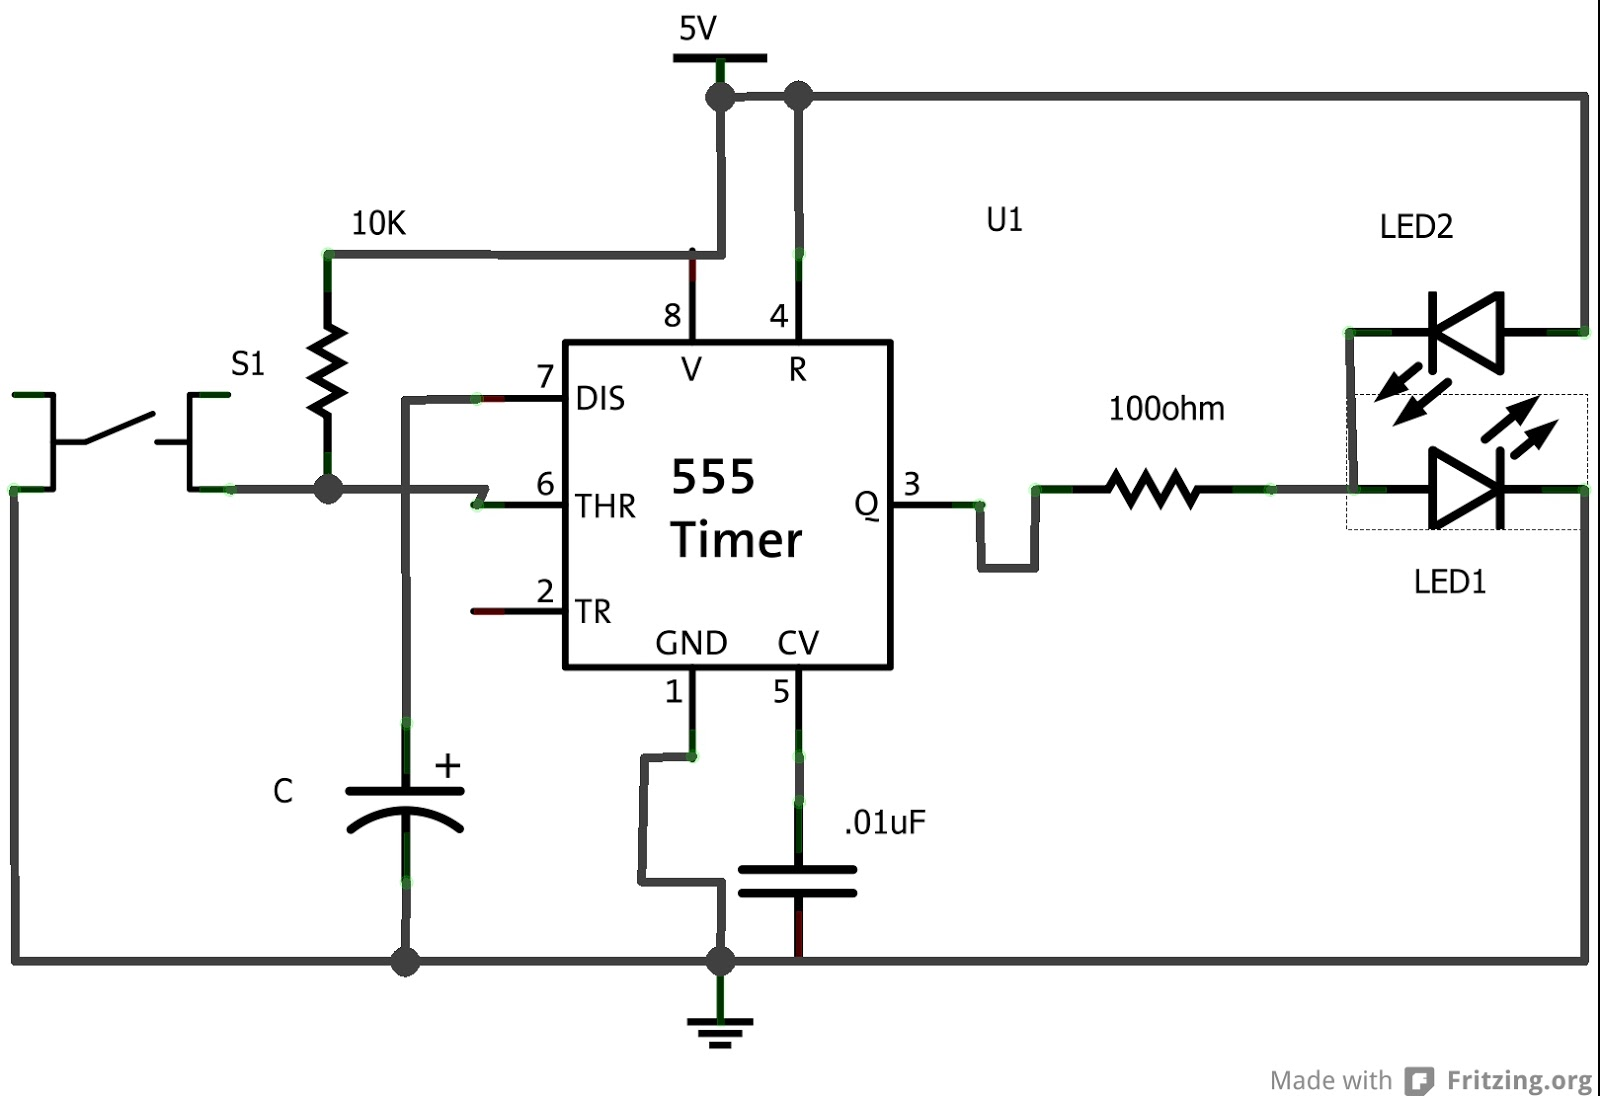 Pin Diagram 555 Ic As A Stable Circuit Diagram Figure A 555 Ic